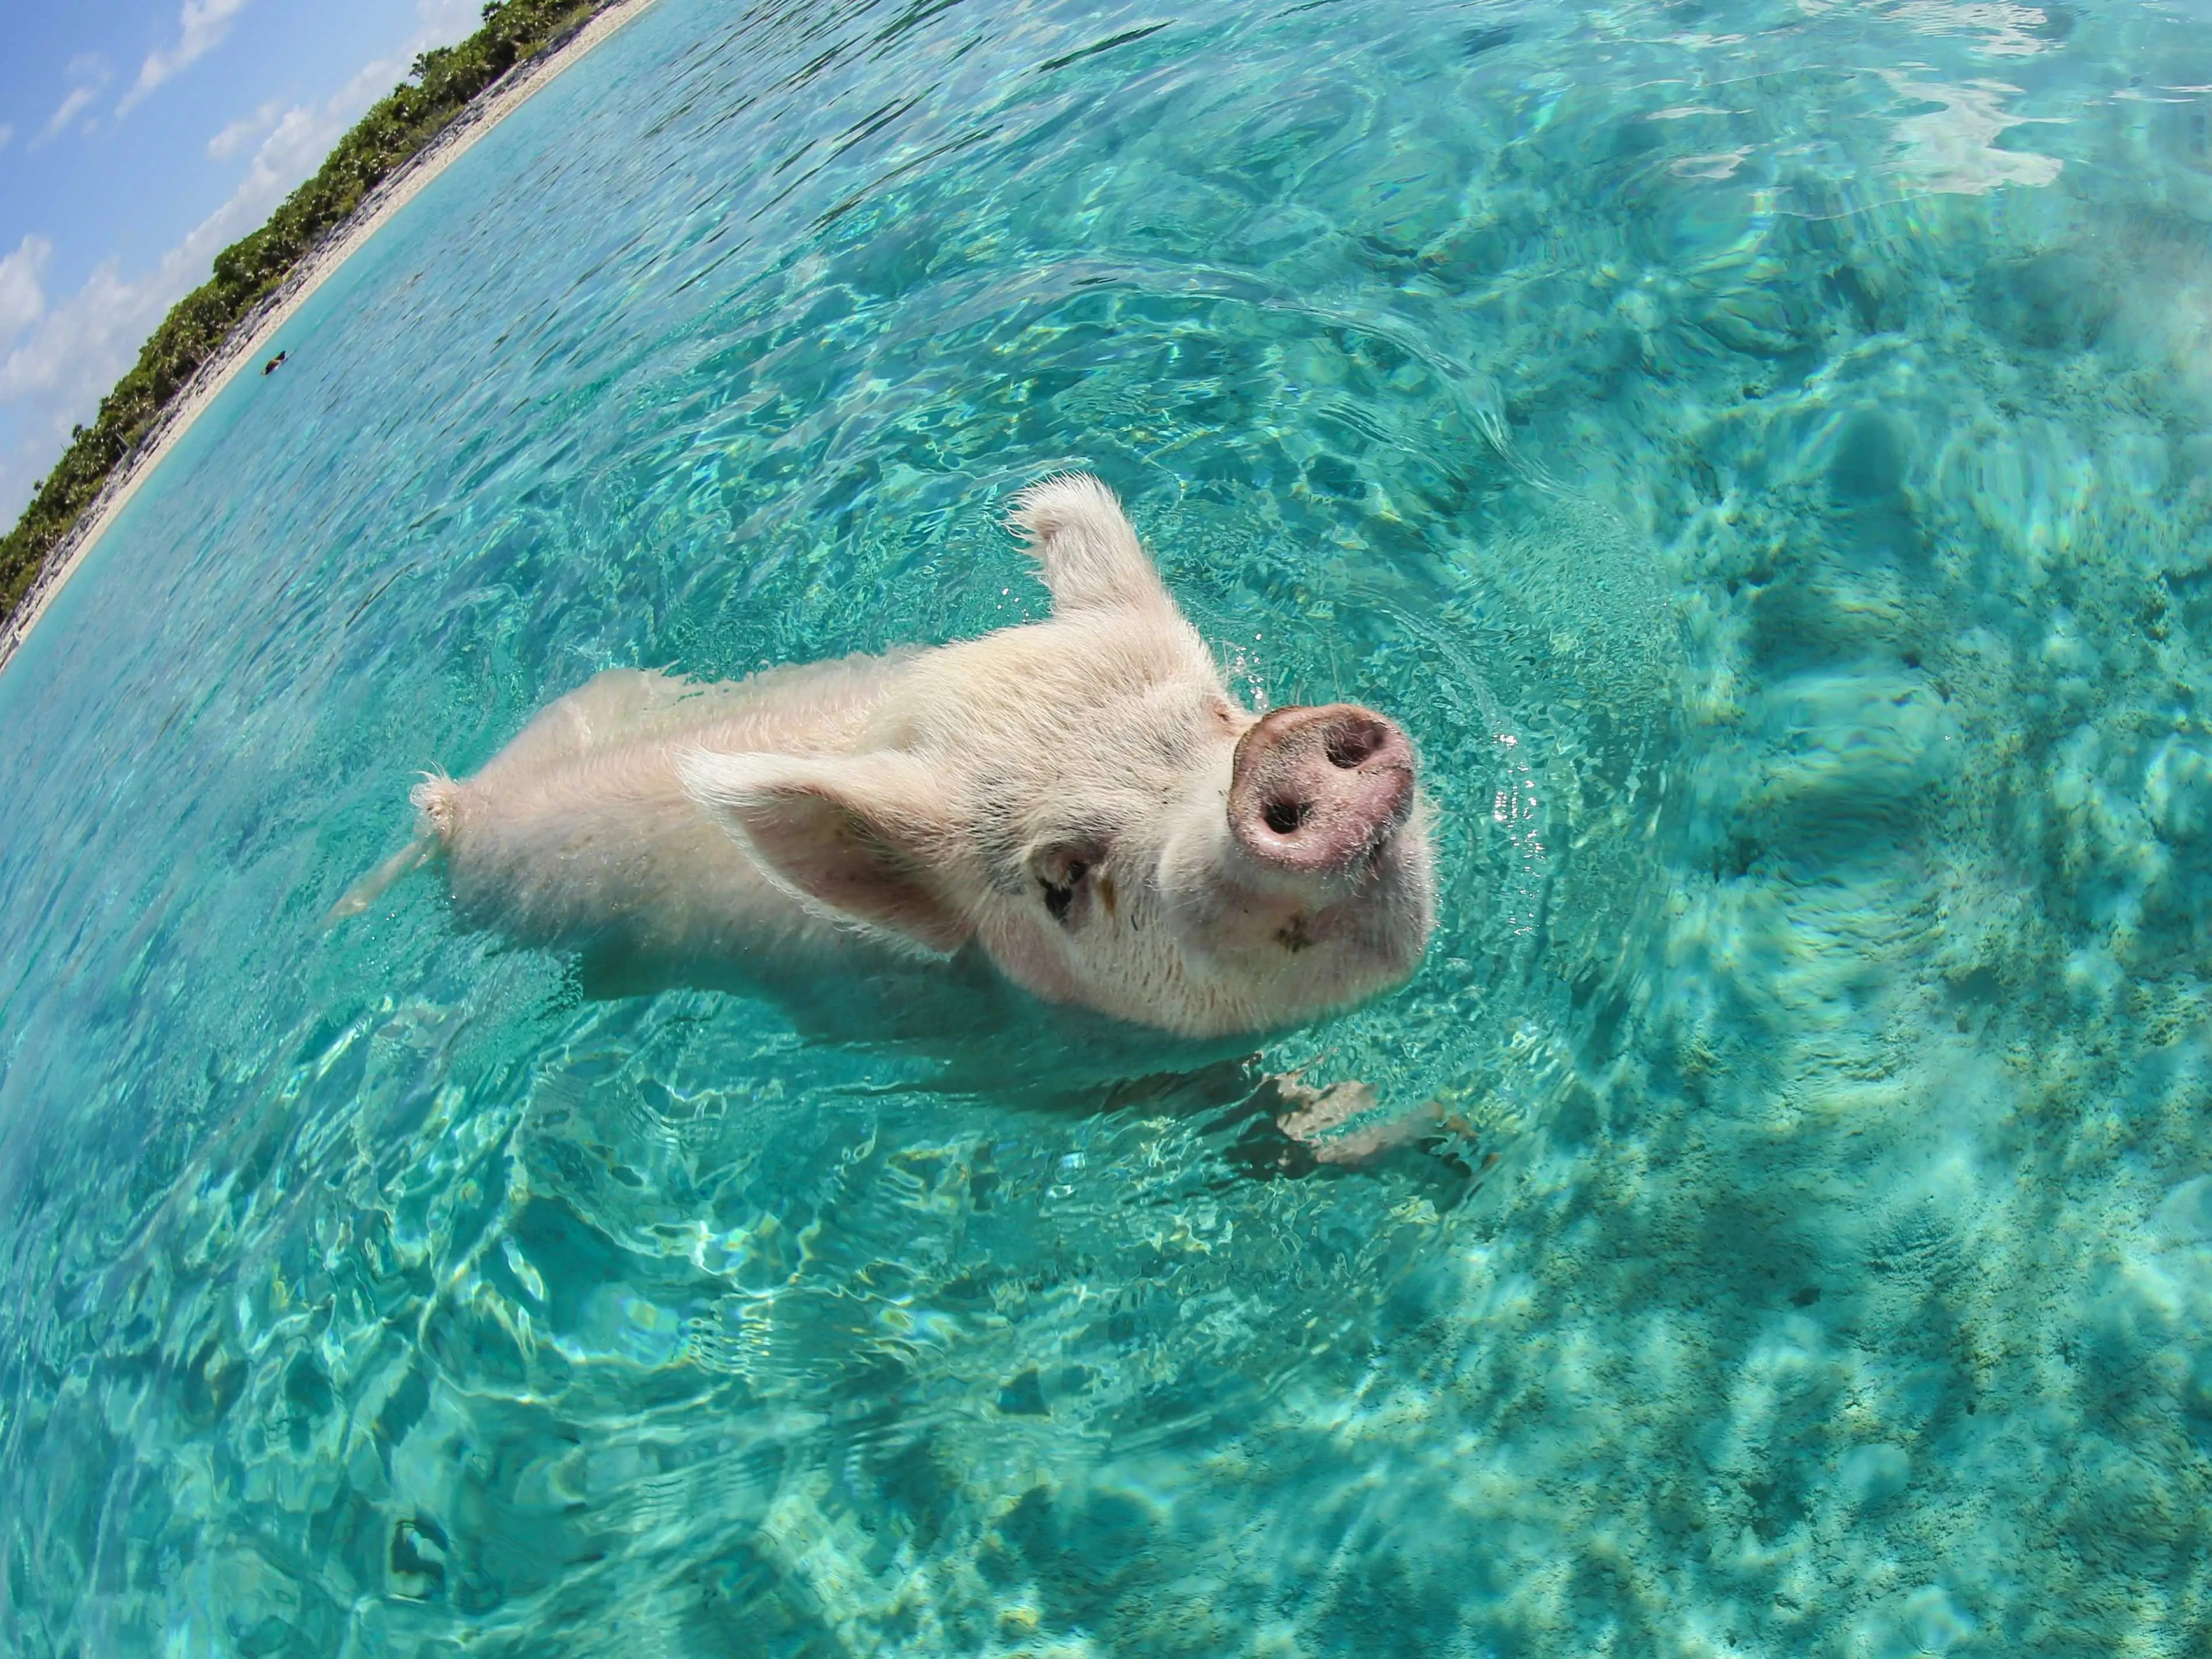 Big Major Cay's pigs swimming in the clear, turquoise waters of the Bahamas.